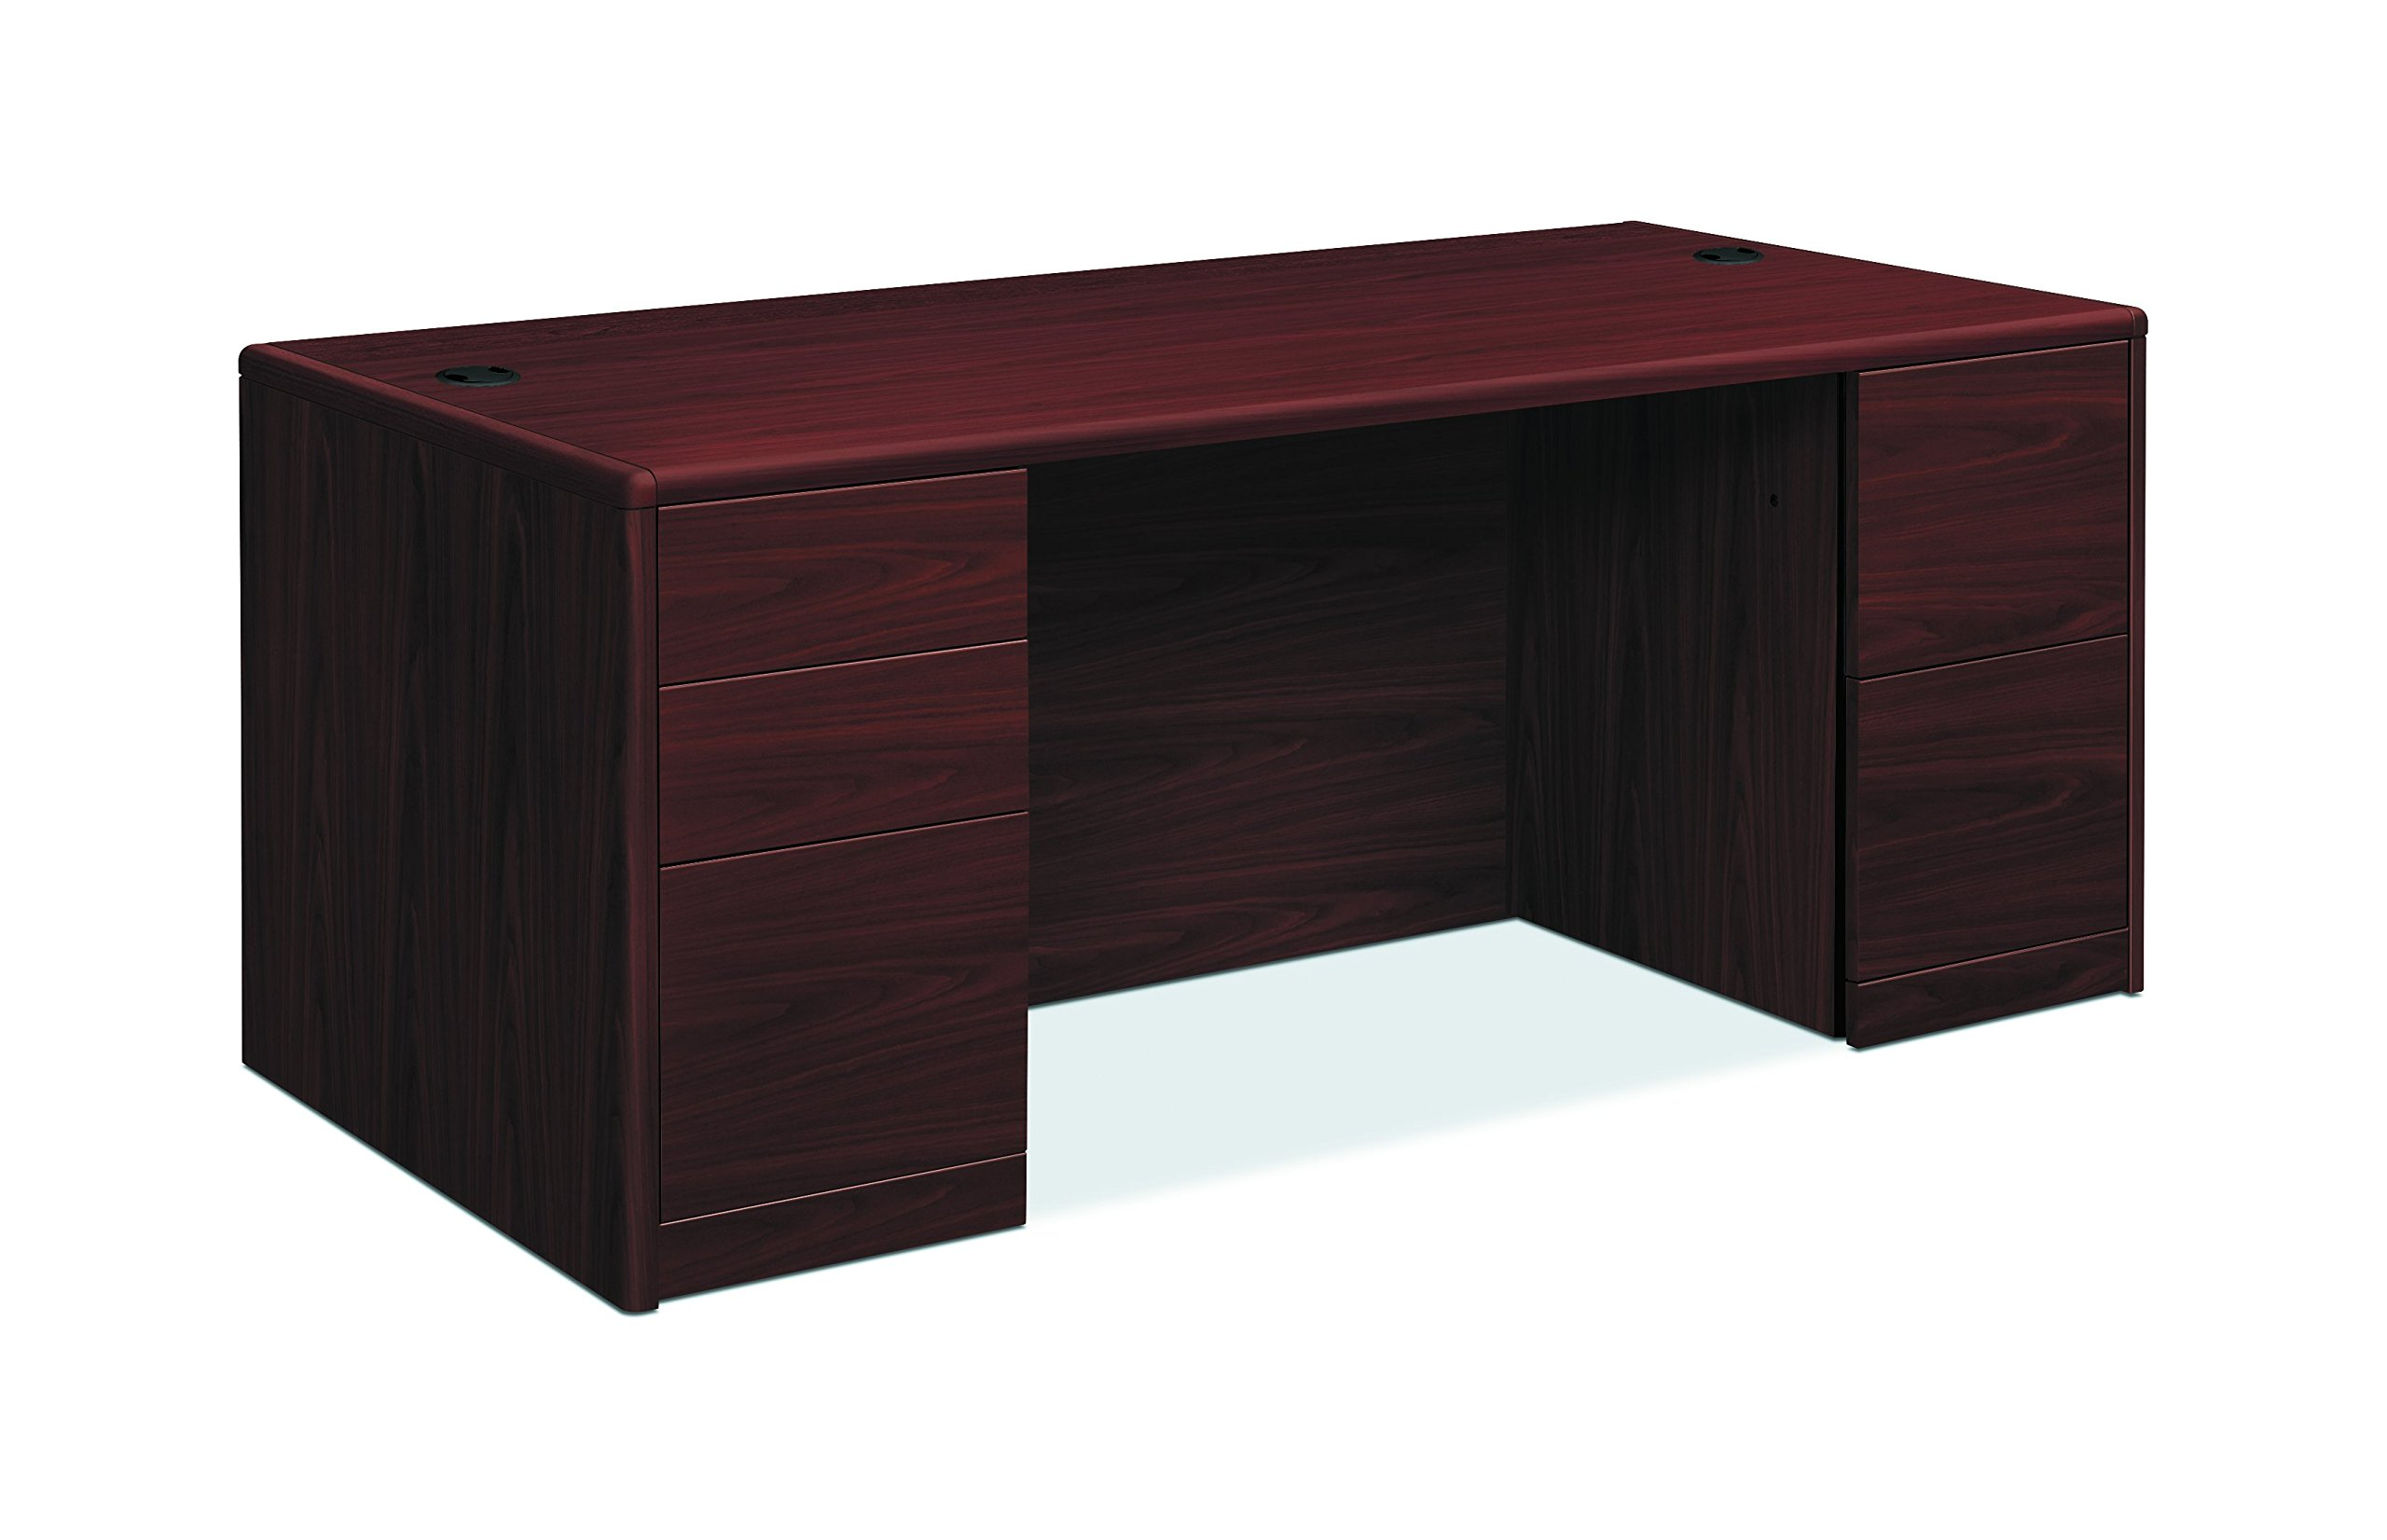 HON 10799NN 10700 Double Pedestal Desk with Full Pedestals, 72w x 36d x 29 1/2h, Mahogany by HON